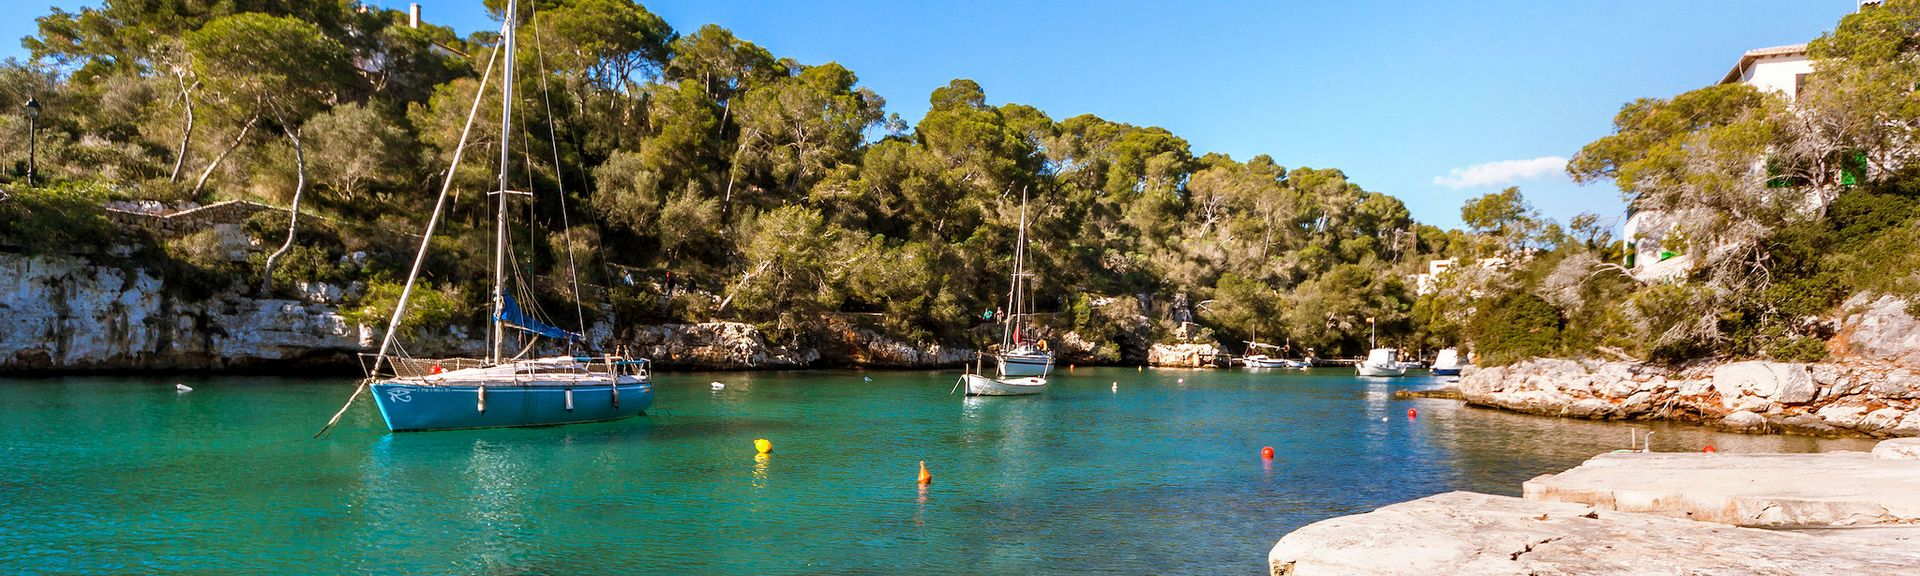 Cala Llombards Beach, Santanyi, Balearic Islands, Spain